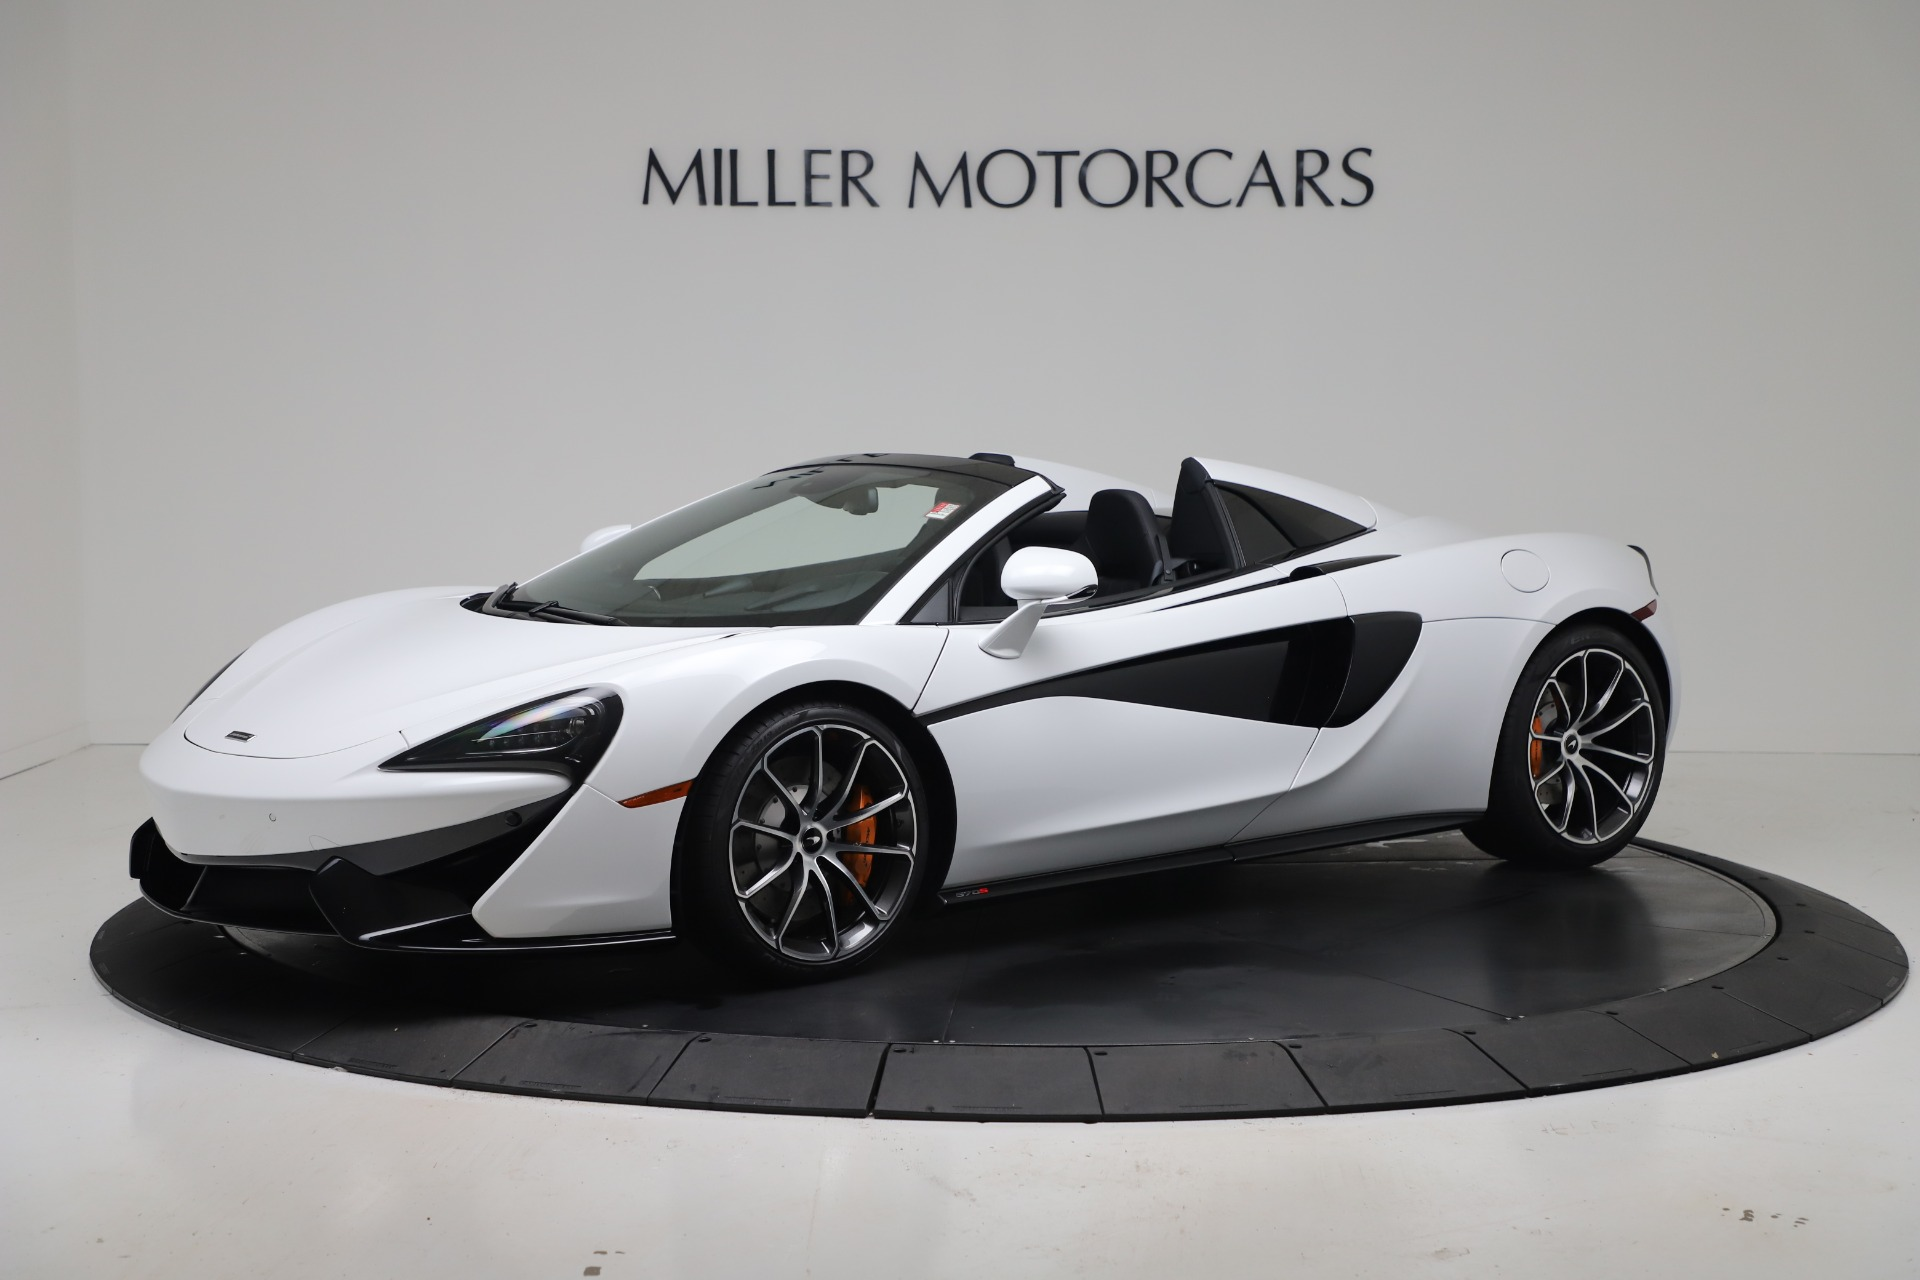 New 2020 McLaren 570S Spider Convertible for sale $231,150 at Bentley Greenwich in Greenwich CT 06830 1